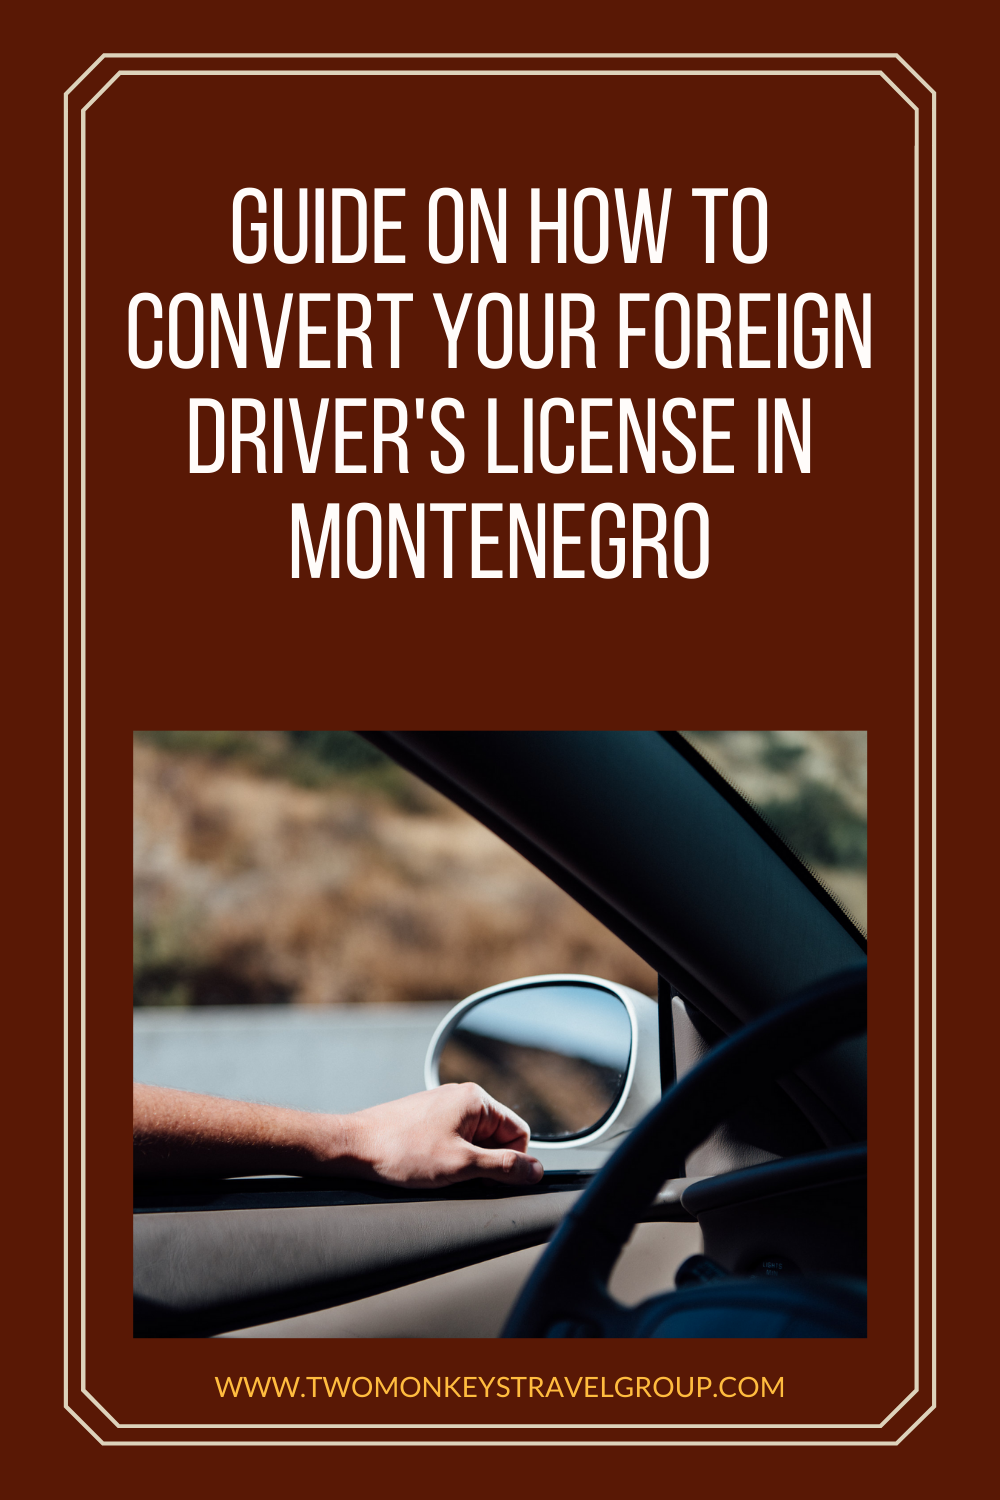 Convert Your Foreign Driver's License in Montenegro [Montenegro Driver's License]